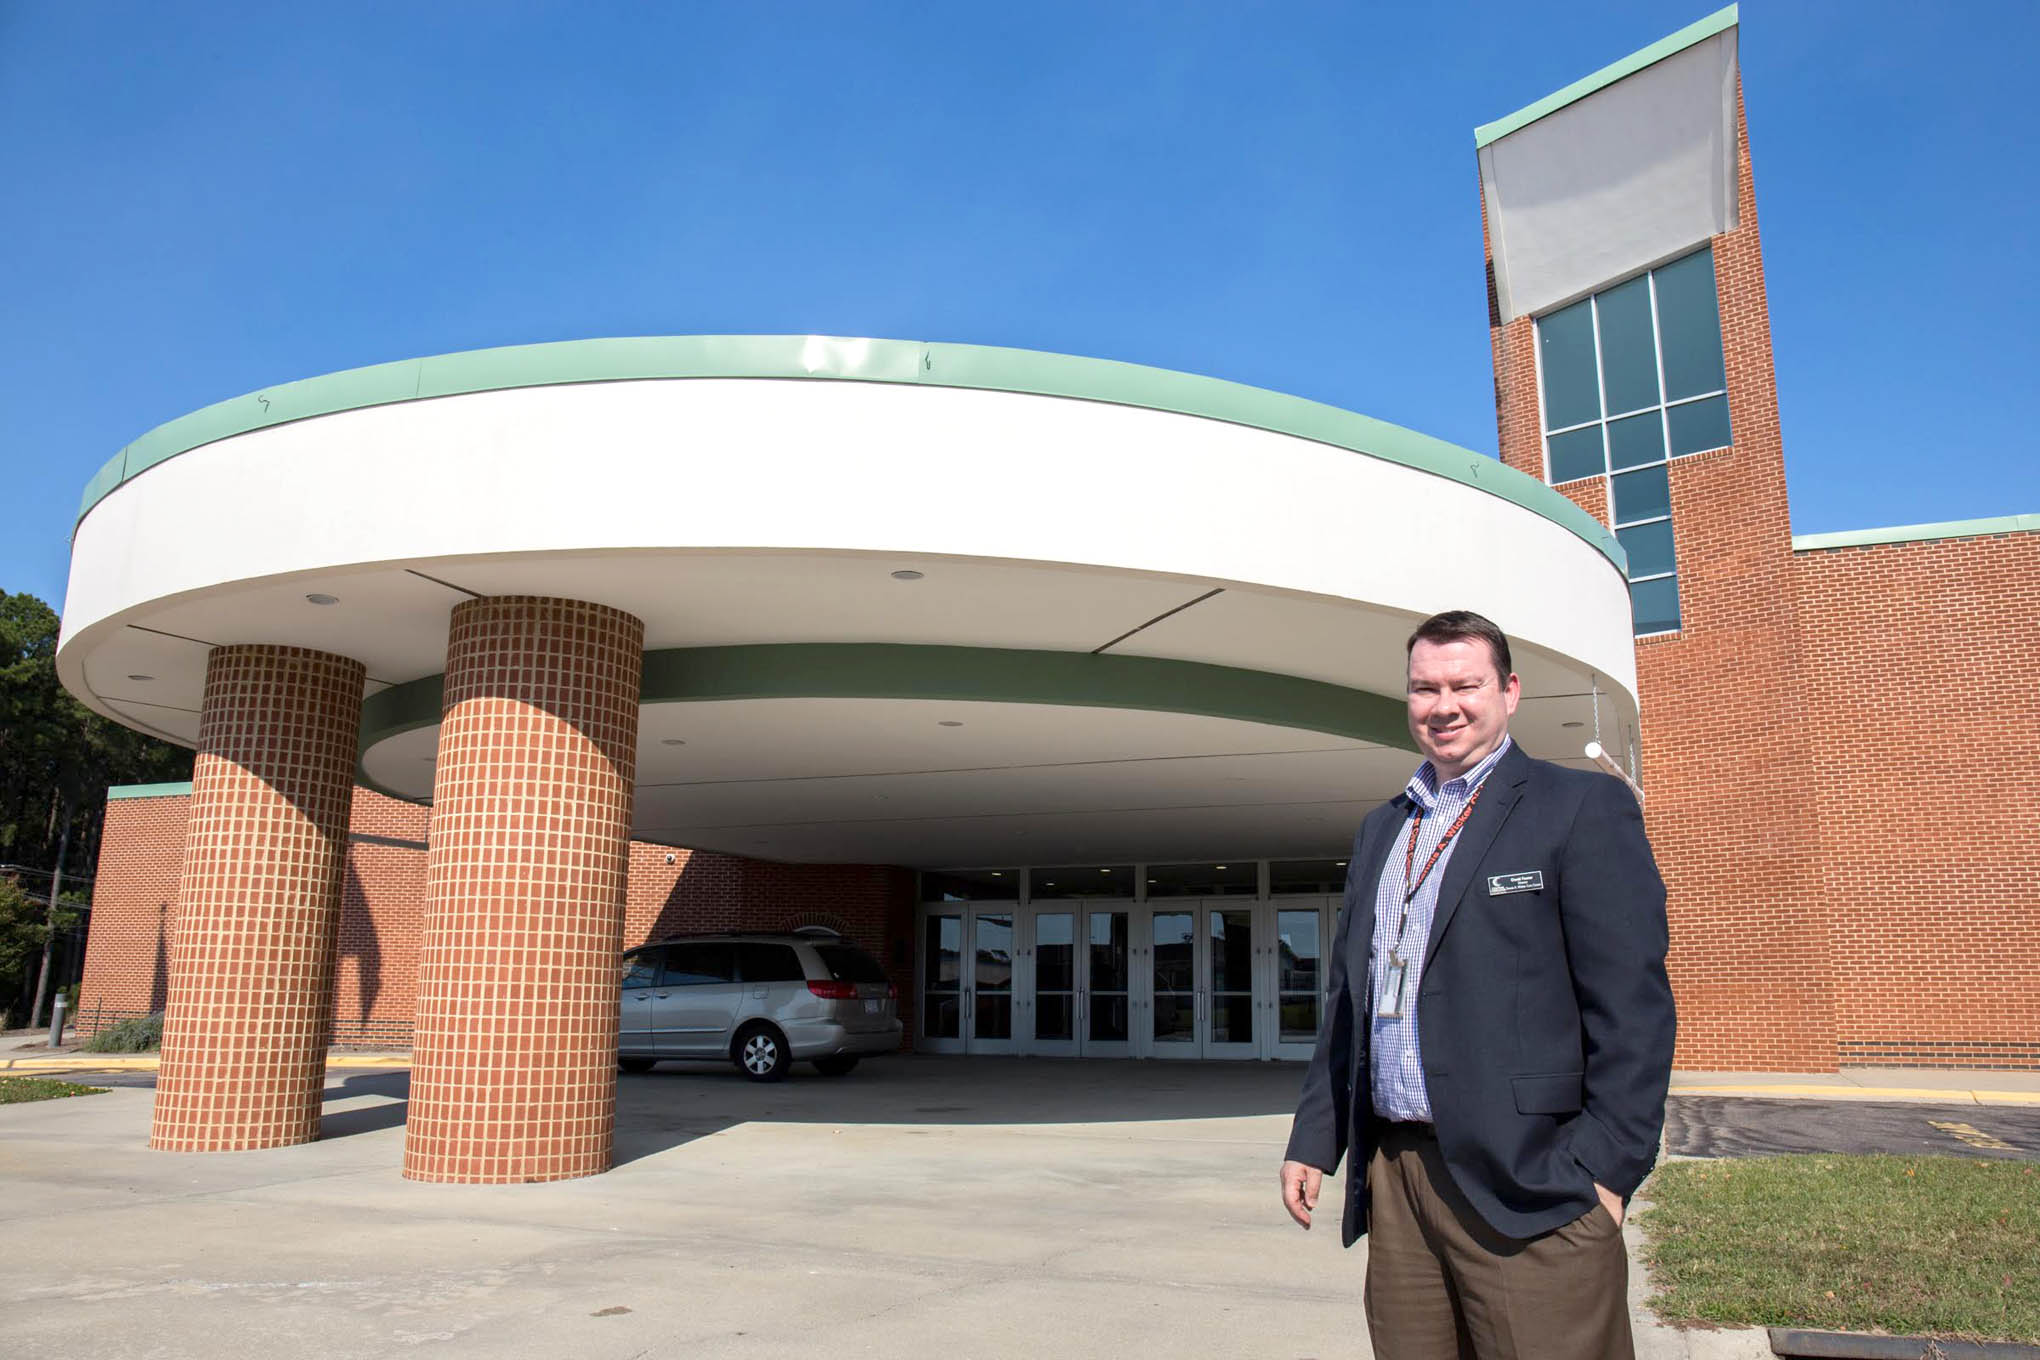 Read the full story, Civic Center director talks about center's operation